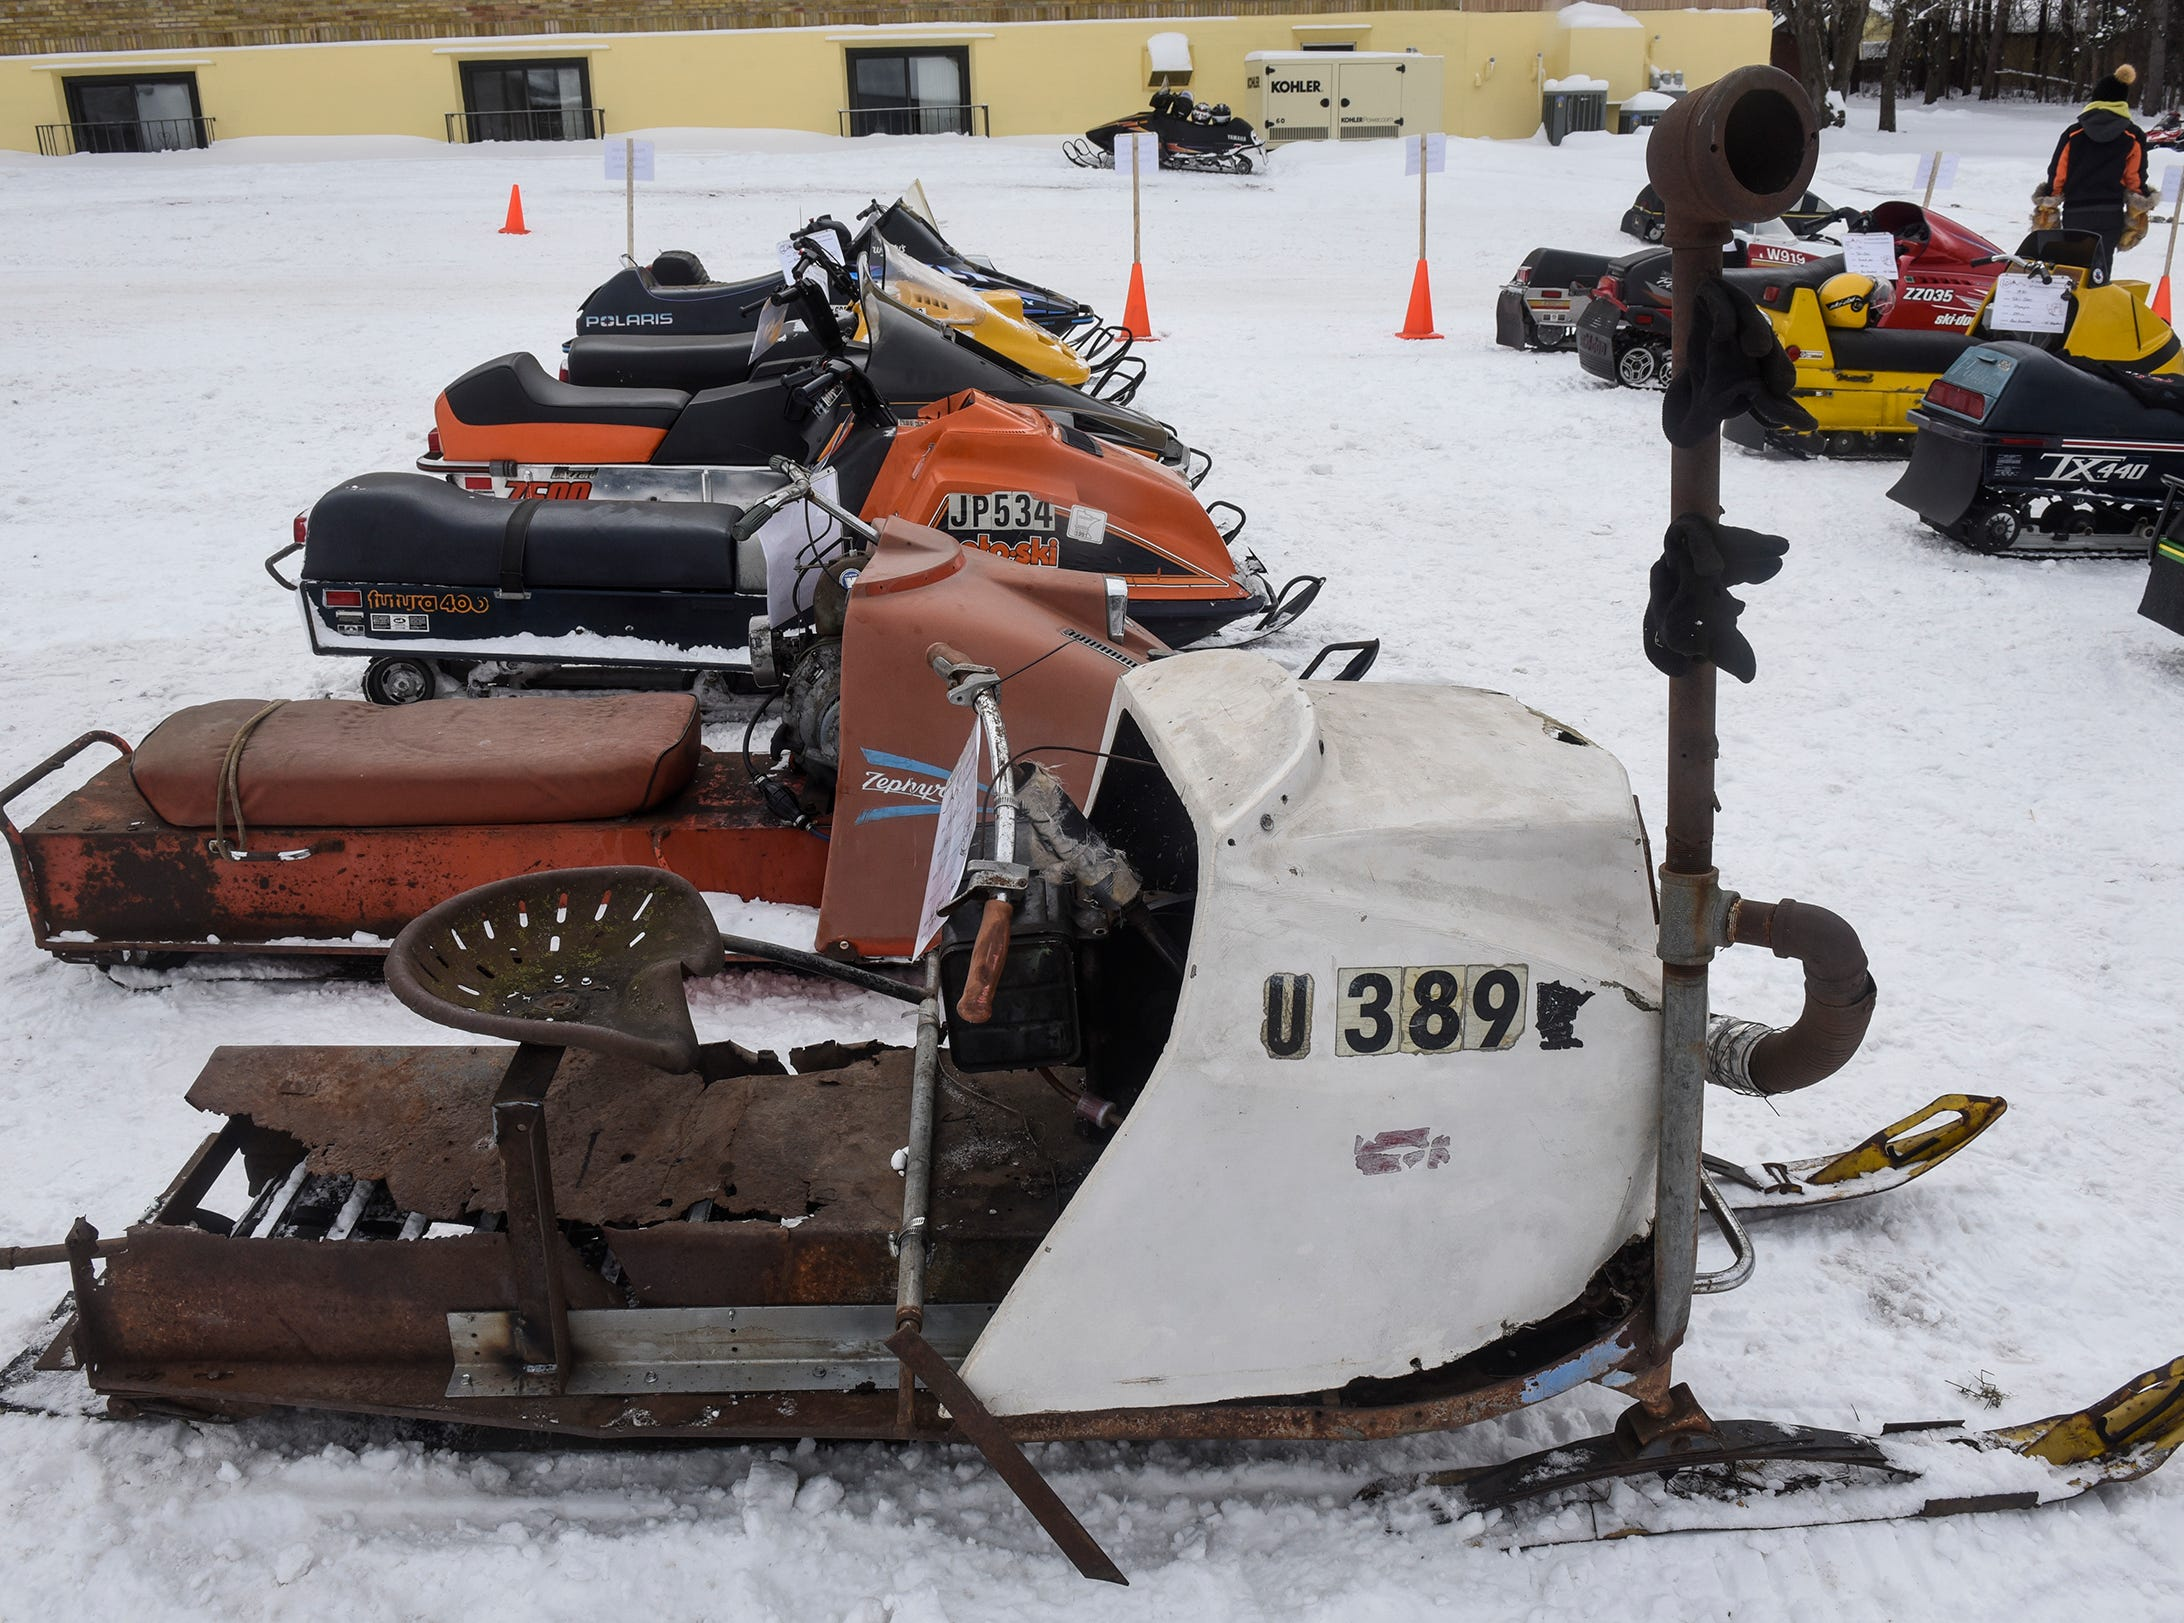 Vintage sleds are on display Saturday, Feb. 9, during the St. Stephen River Runners snowmobile club's 50th Anniversary Celebration in St. Stephen.